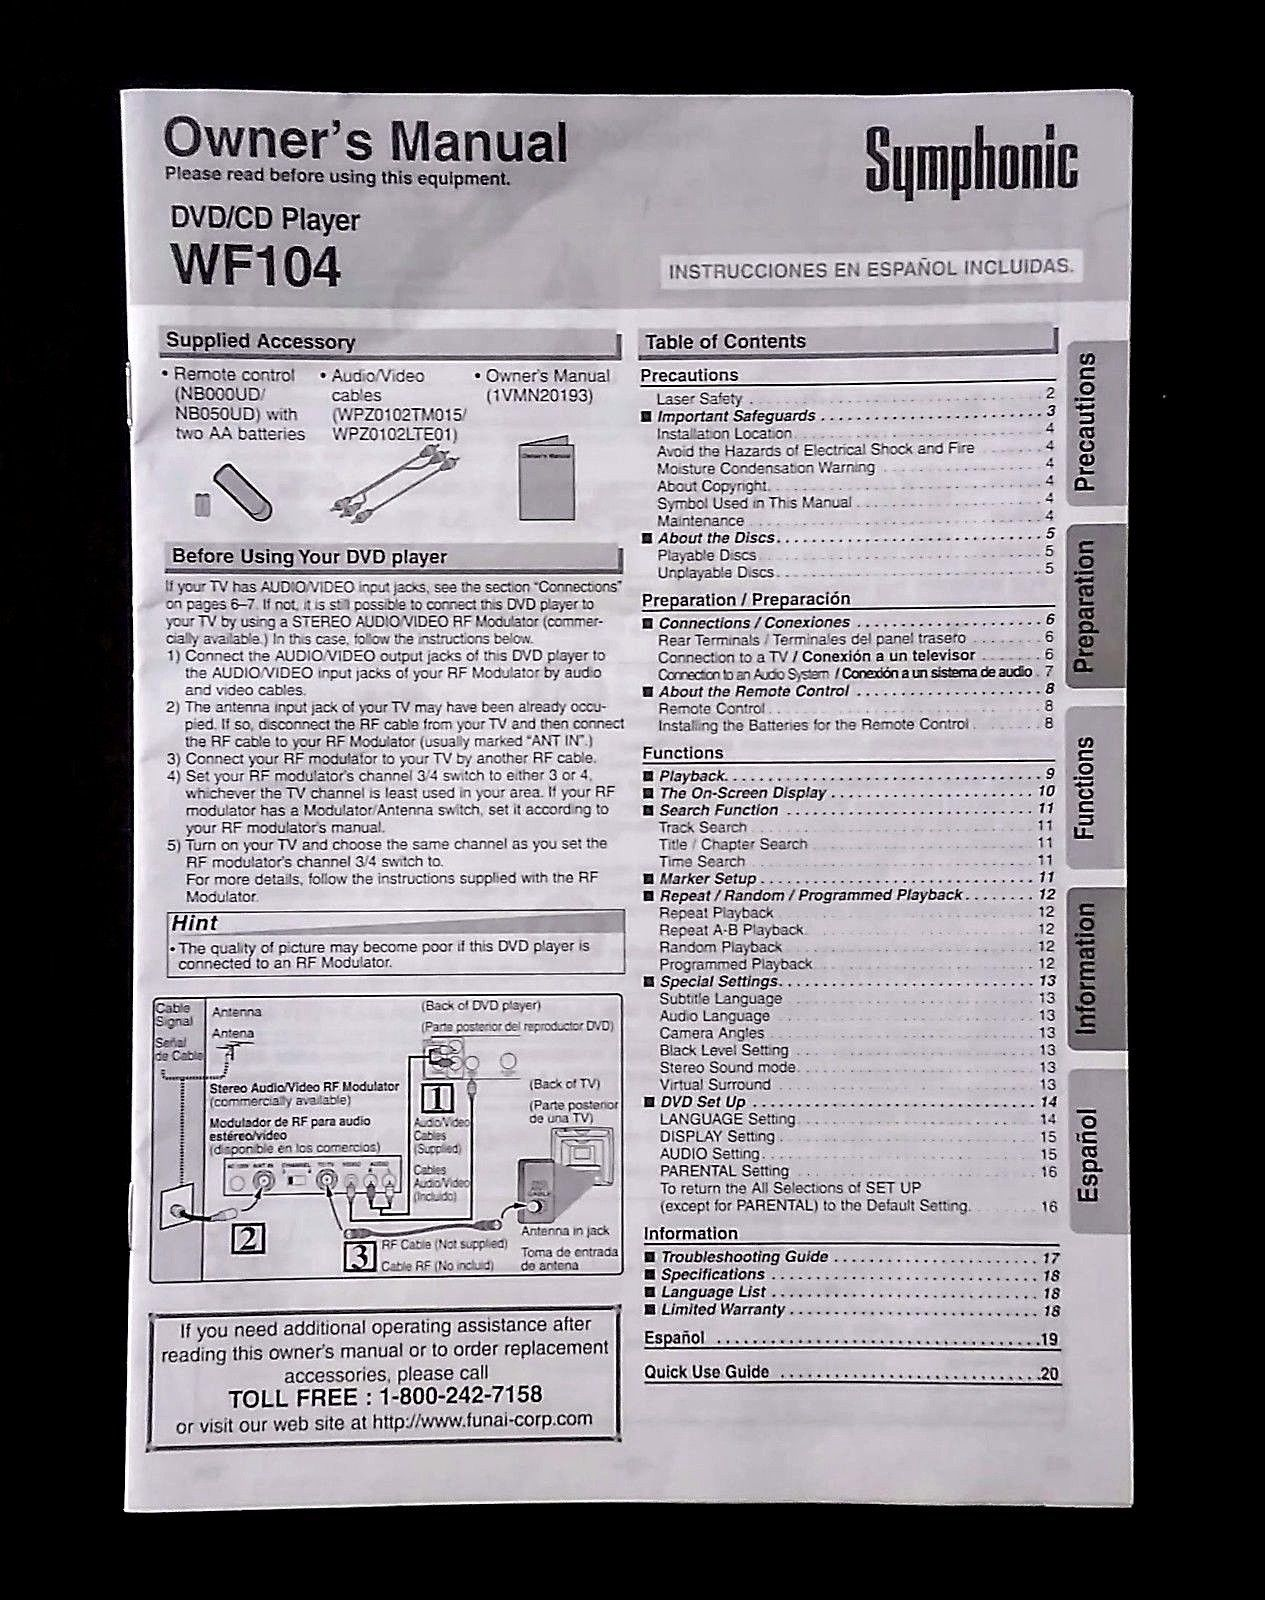 Symphonic WF104 DVD/CD Owner's Manual Only and 50 similar items